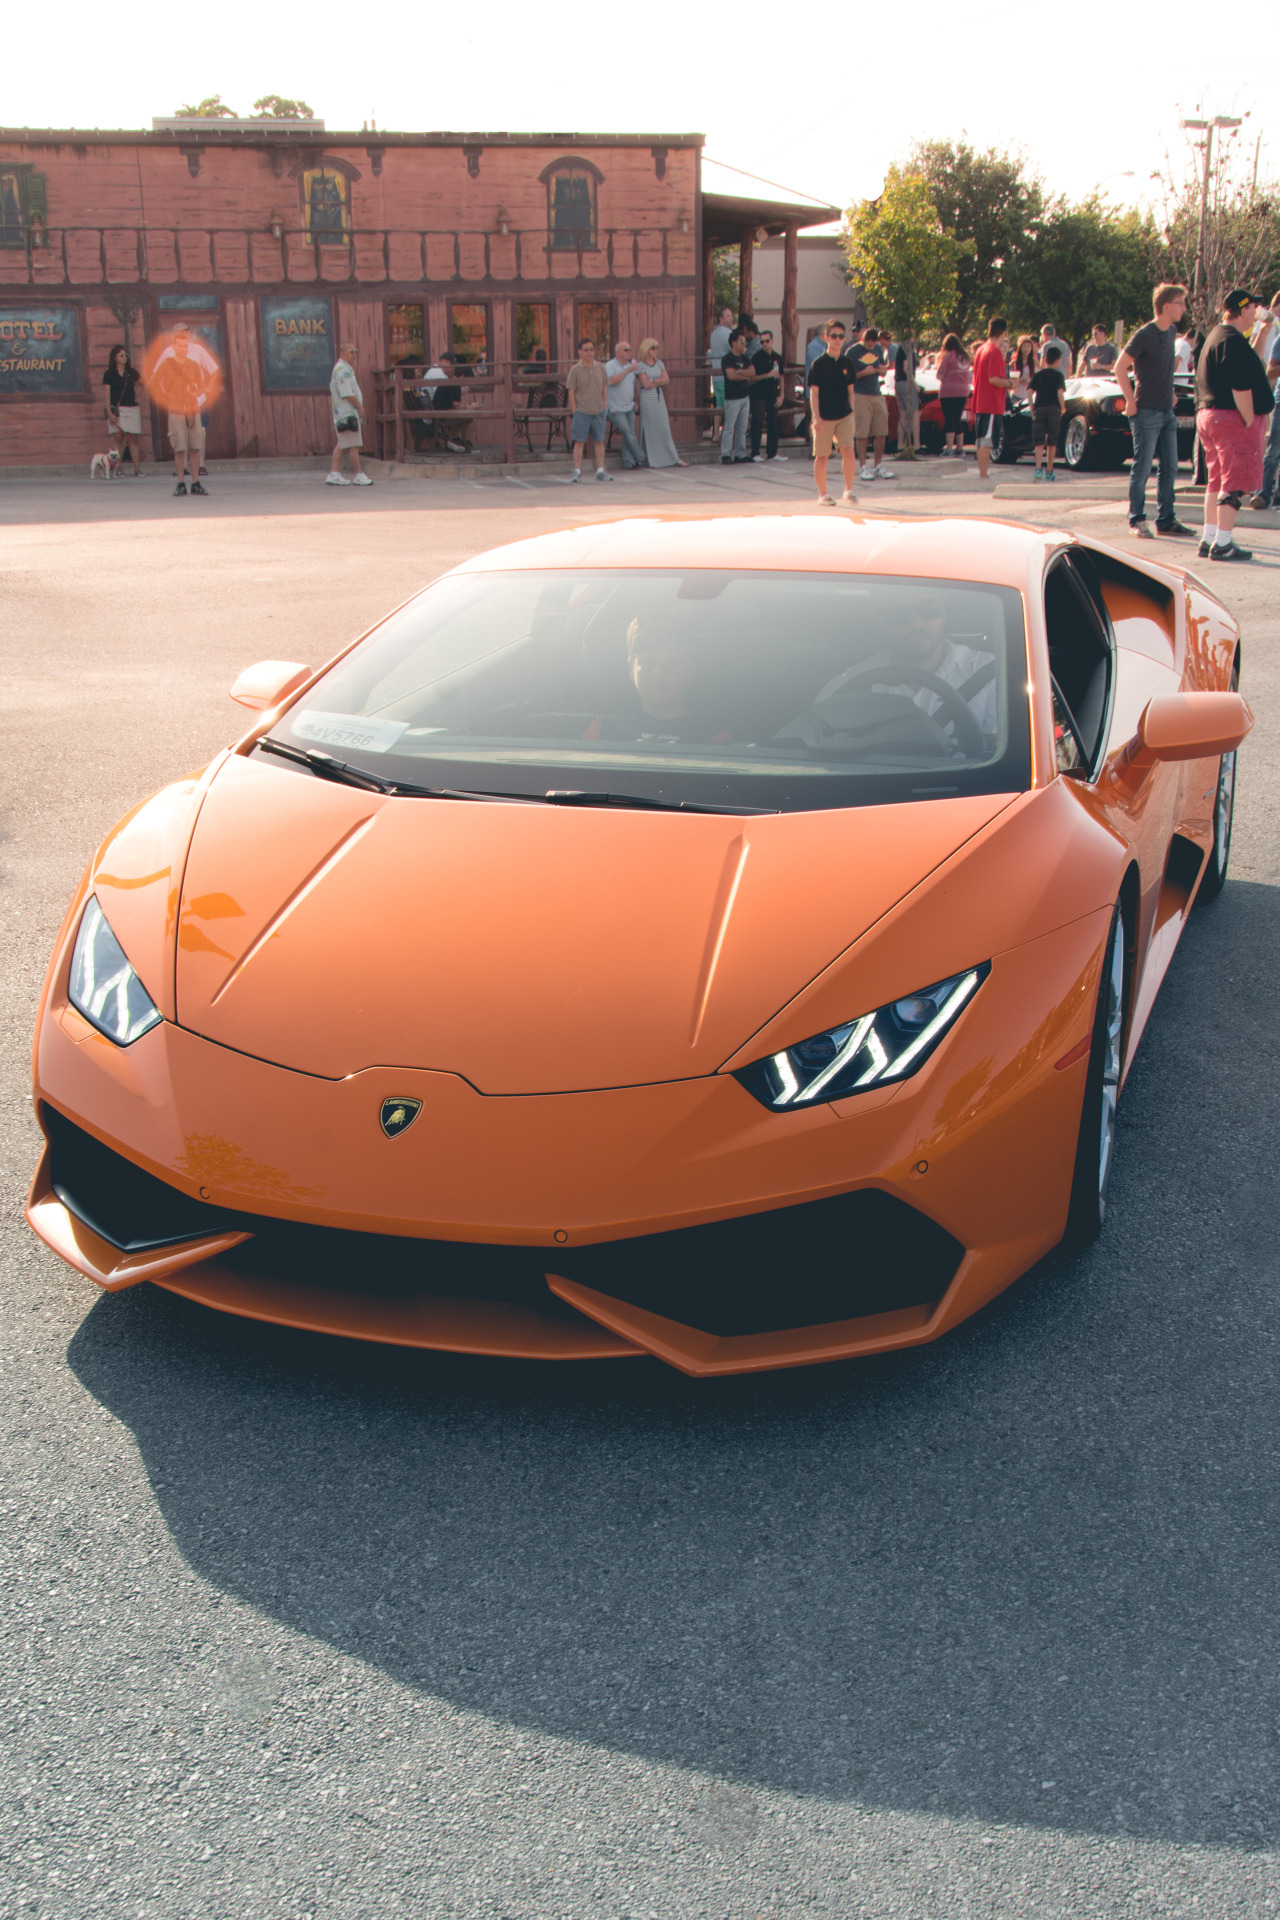 huracan lamborghini orange sportscar drive speed